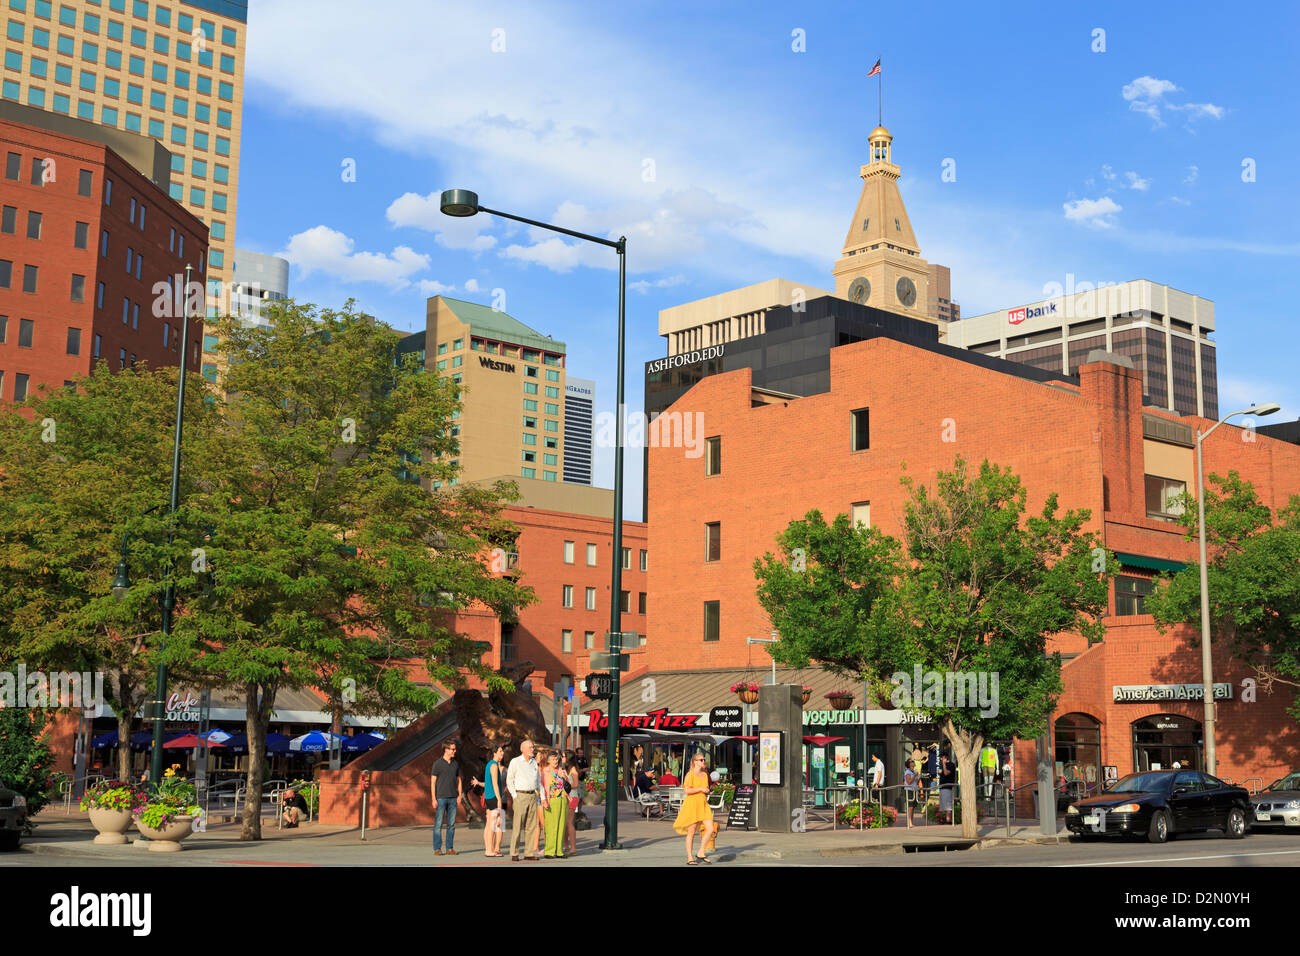 Writers Square on 16th Street Mall, Denver, Colorado, United States of America., North America - Stock Image